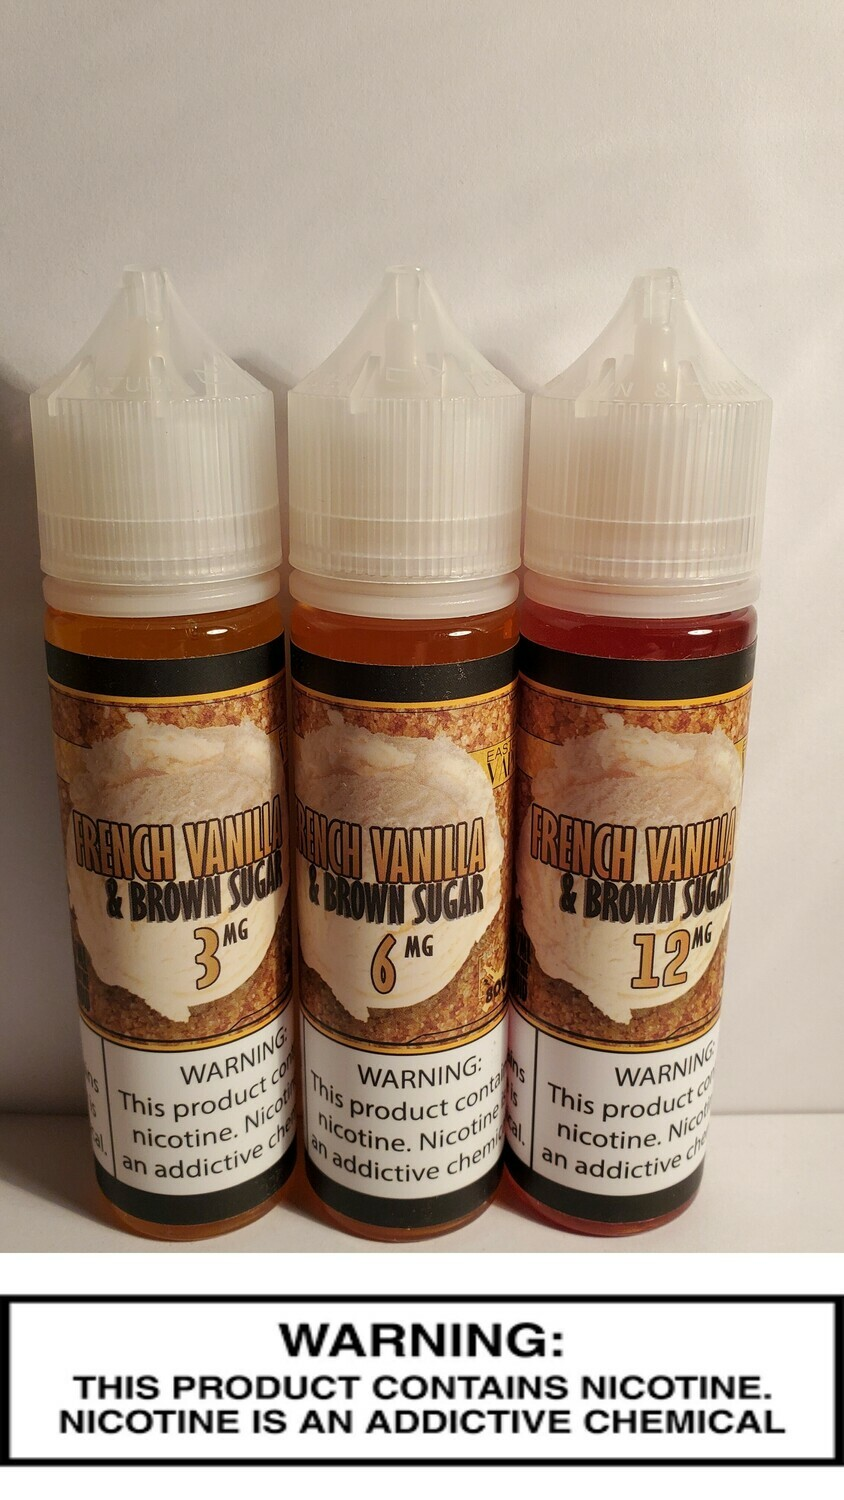 Giant Vapes - French Vanilla Brown Sugar